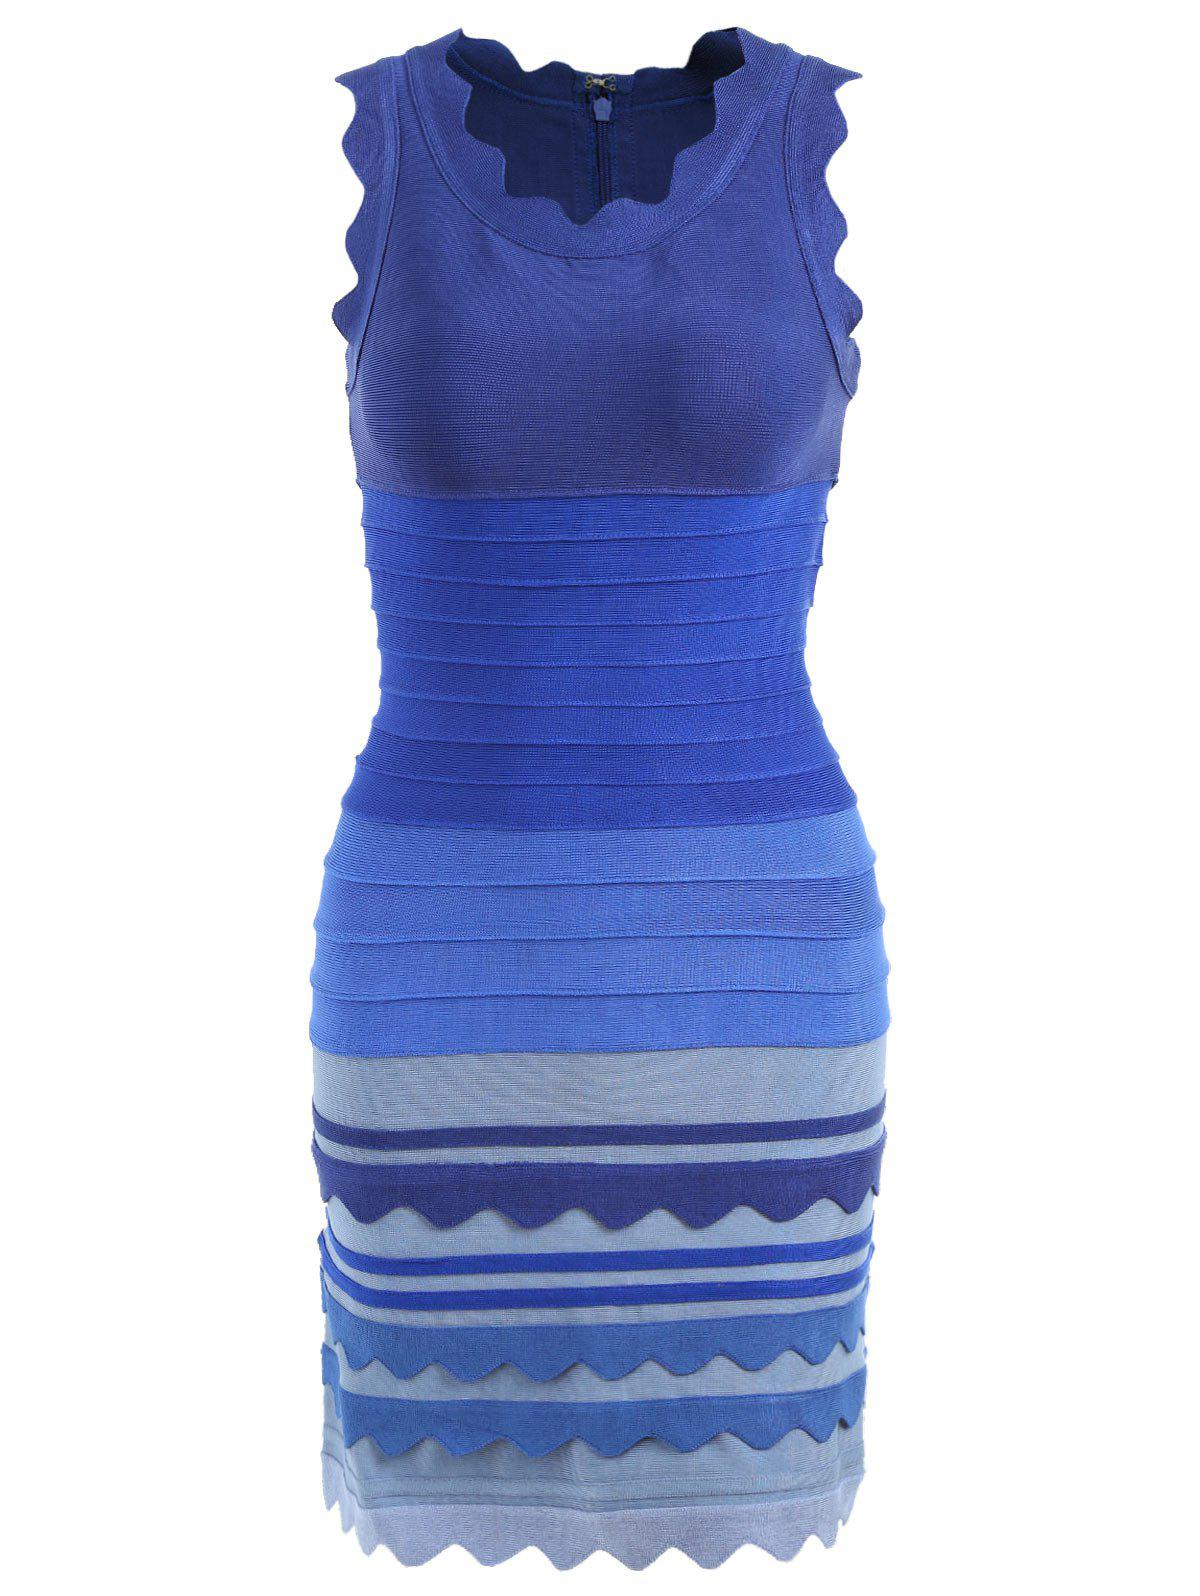 Night Out Ombre Color Bandage Dress - BLUE XL